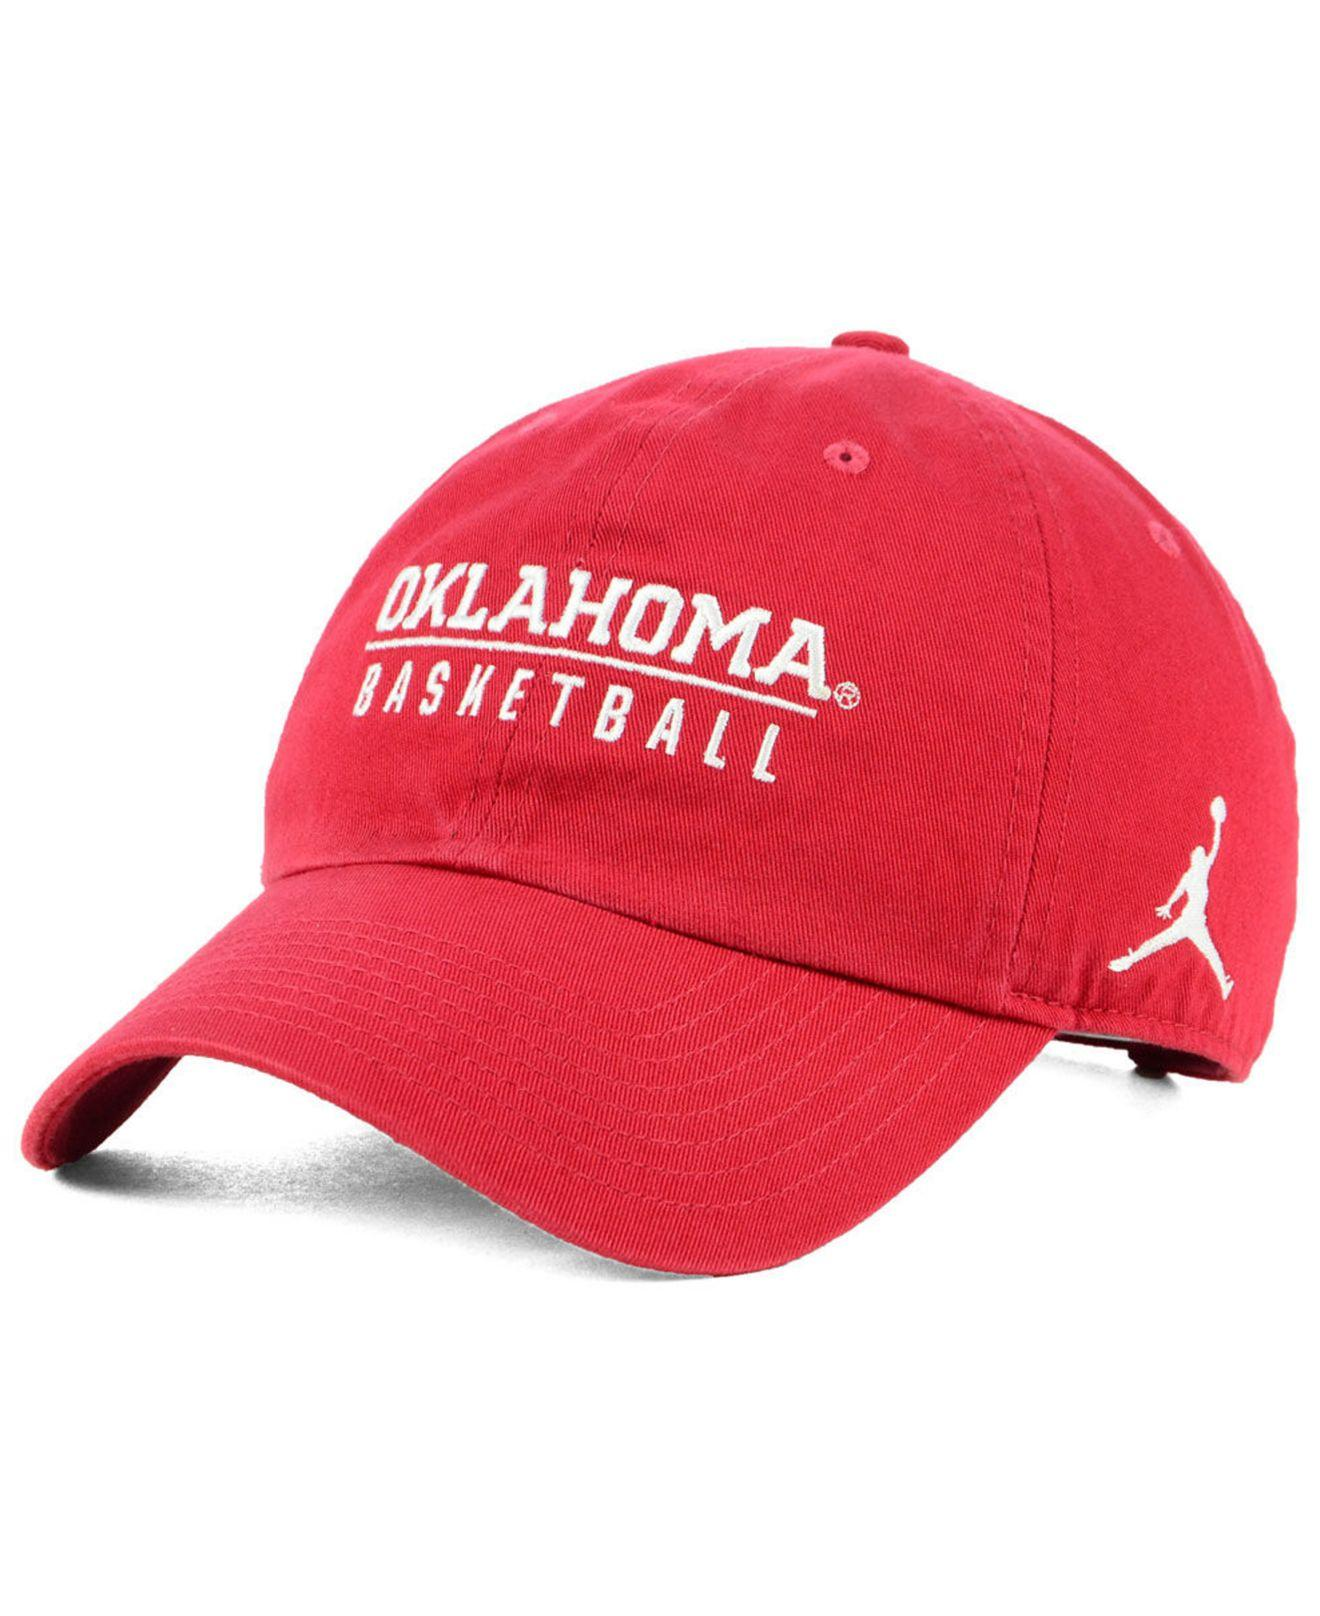 1a5ee165688 Lyst - Nike Oklahoma Sooners Campus Sport Strapback Cap in Red for Men